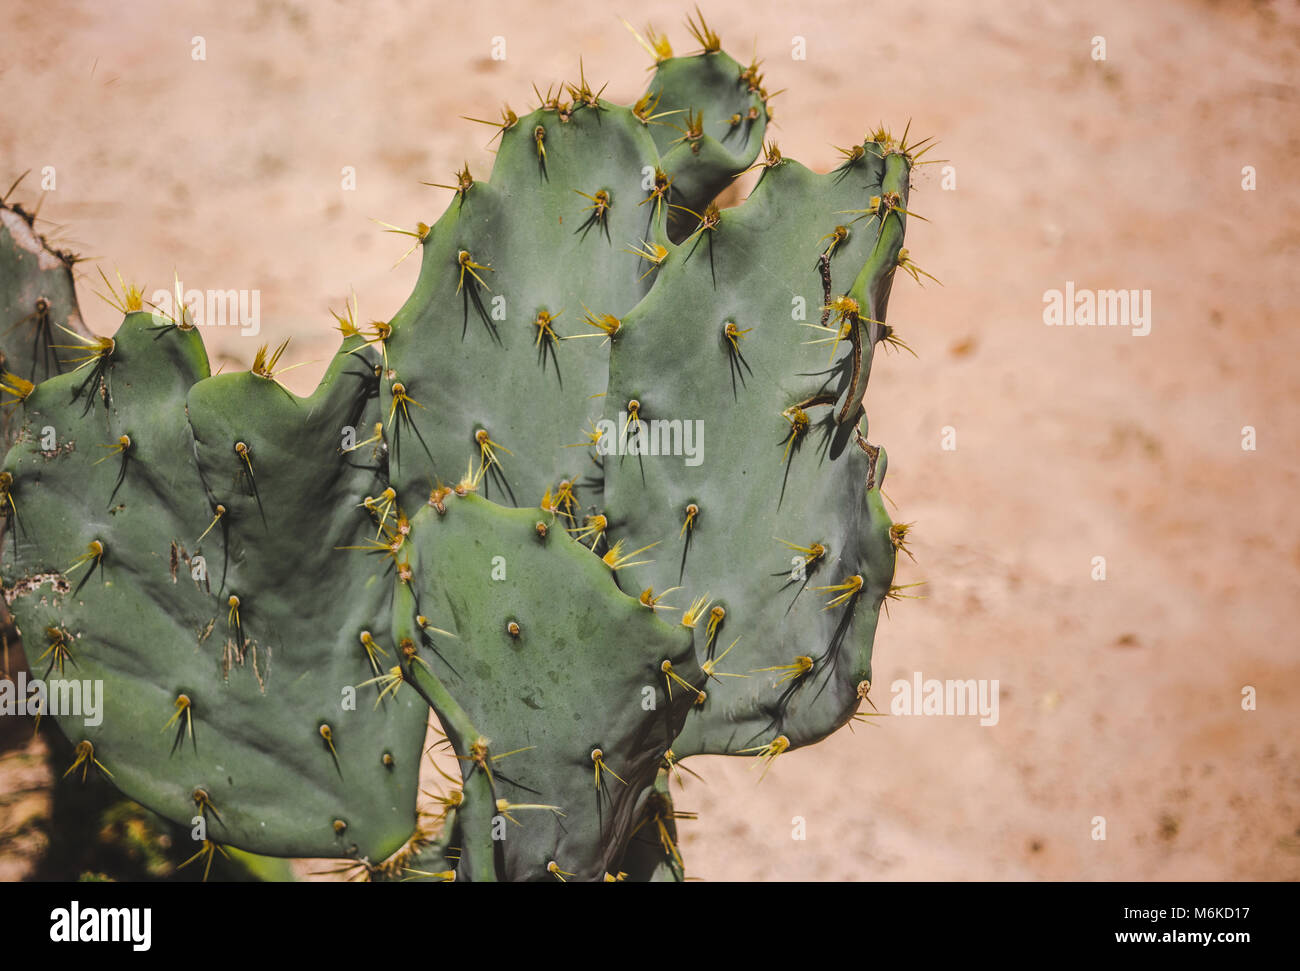 Green cactus with yellow spines in a desert - Stock Image